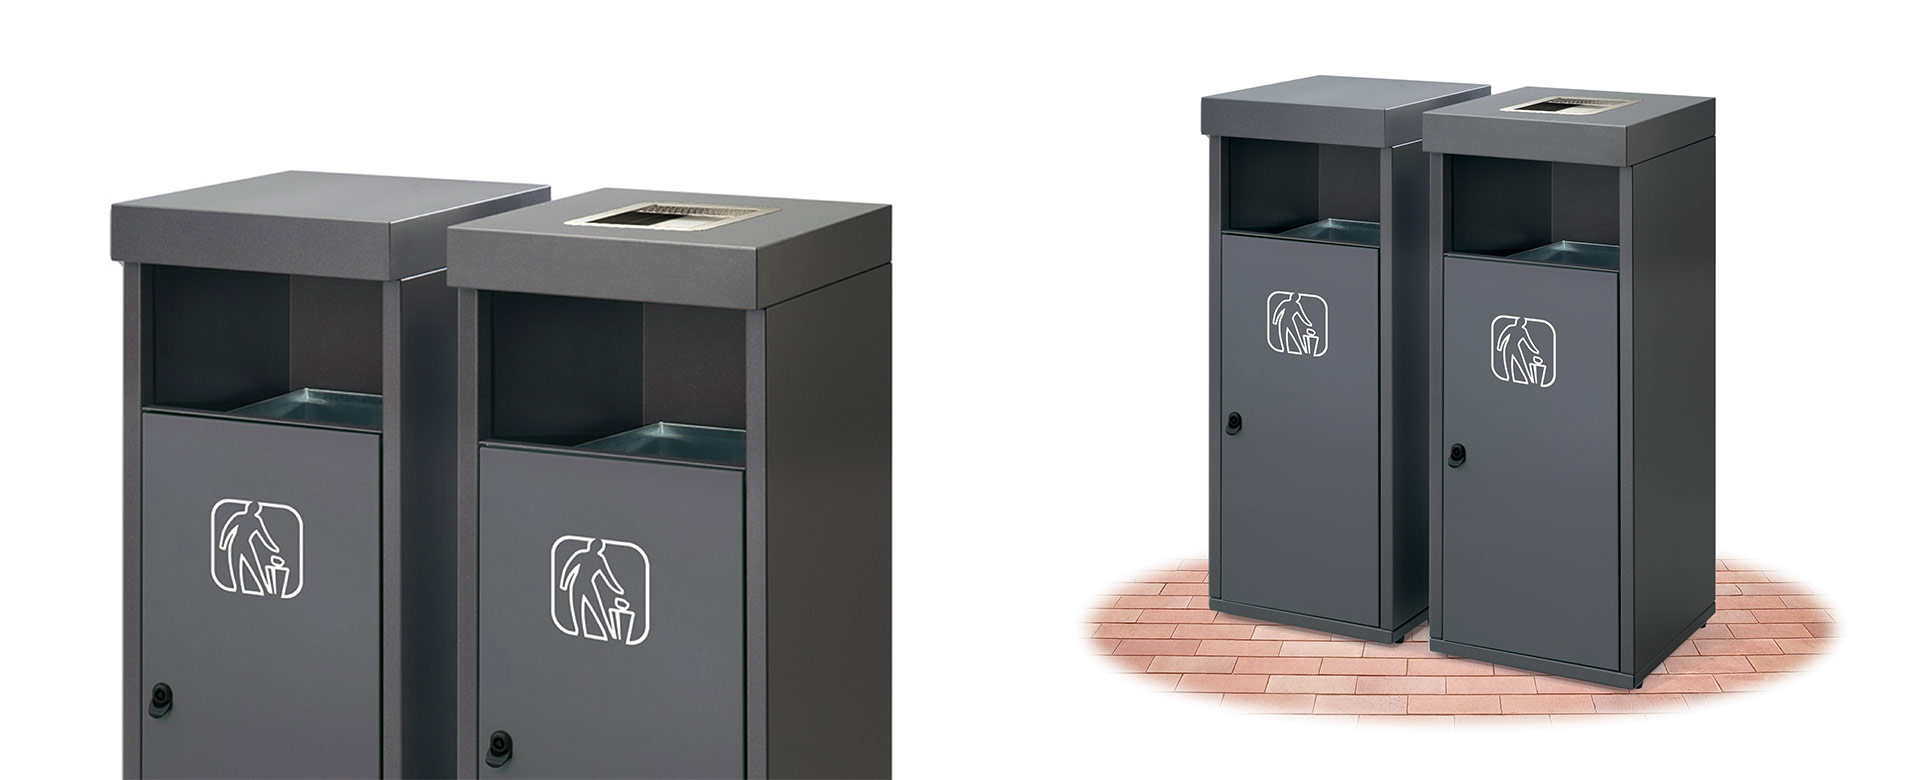 RETTO Waste Receptacle